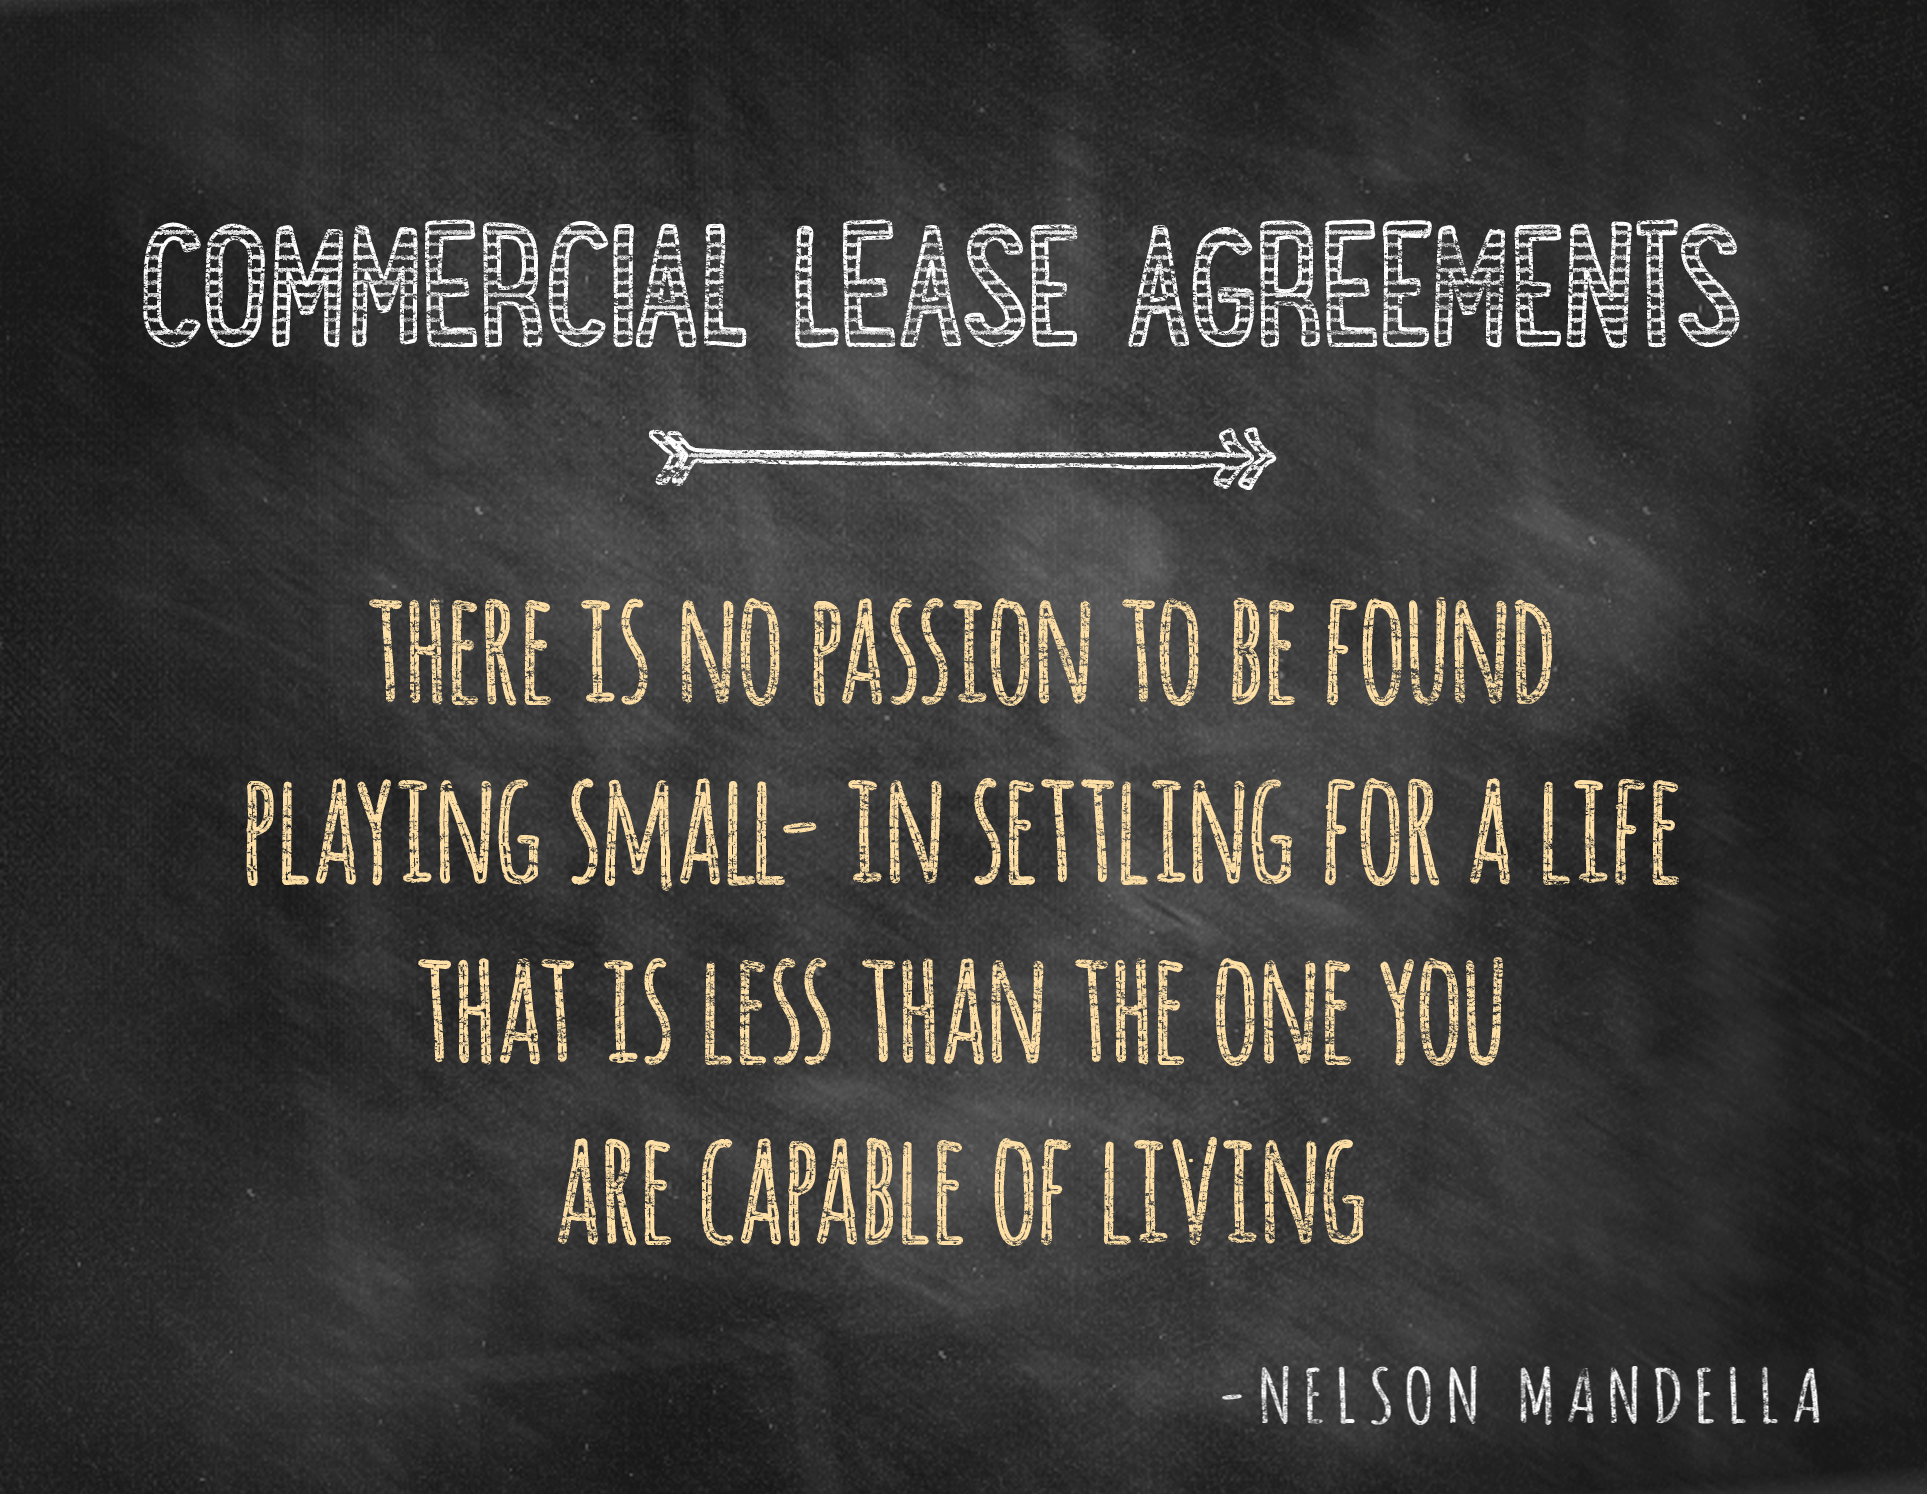 Commercial Lease Pdf